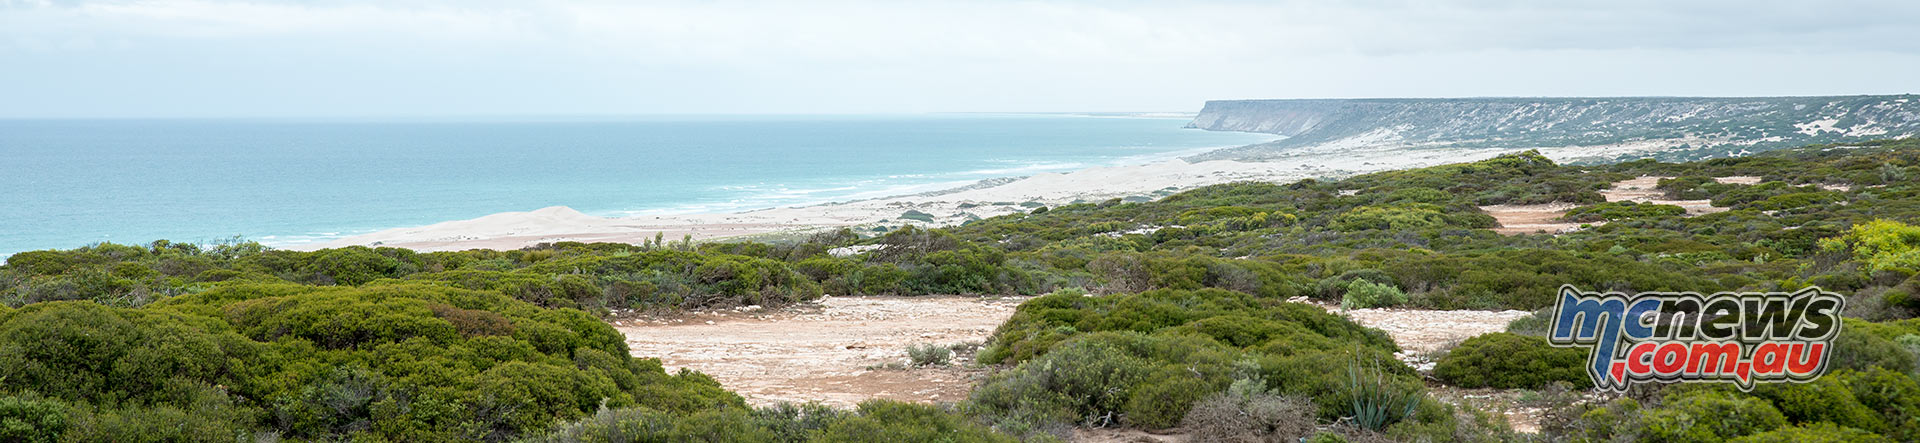 Great Australian Bight - Landscapes like this do not require a motorcycle in them